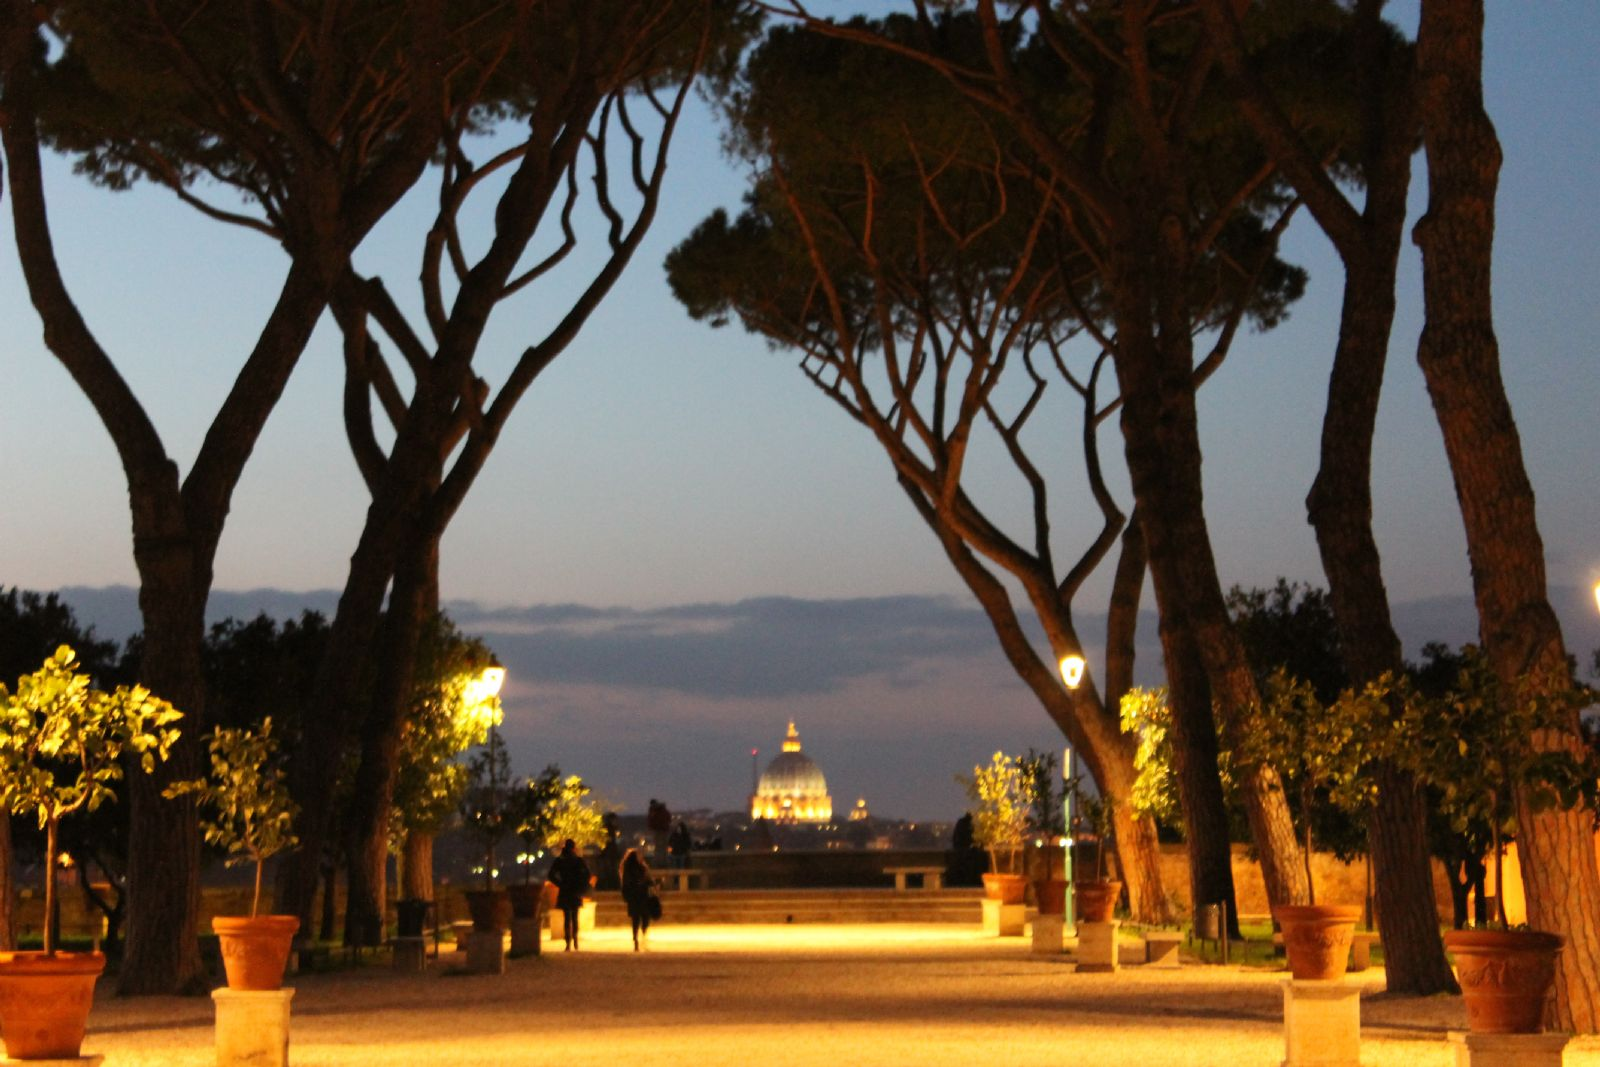 Rome at its most romantic for couples